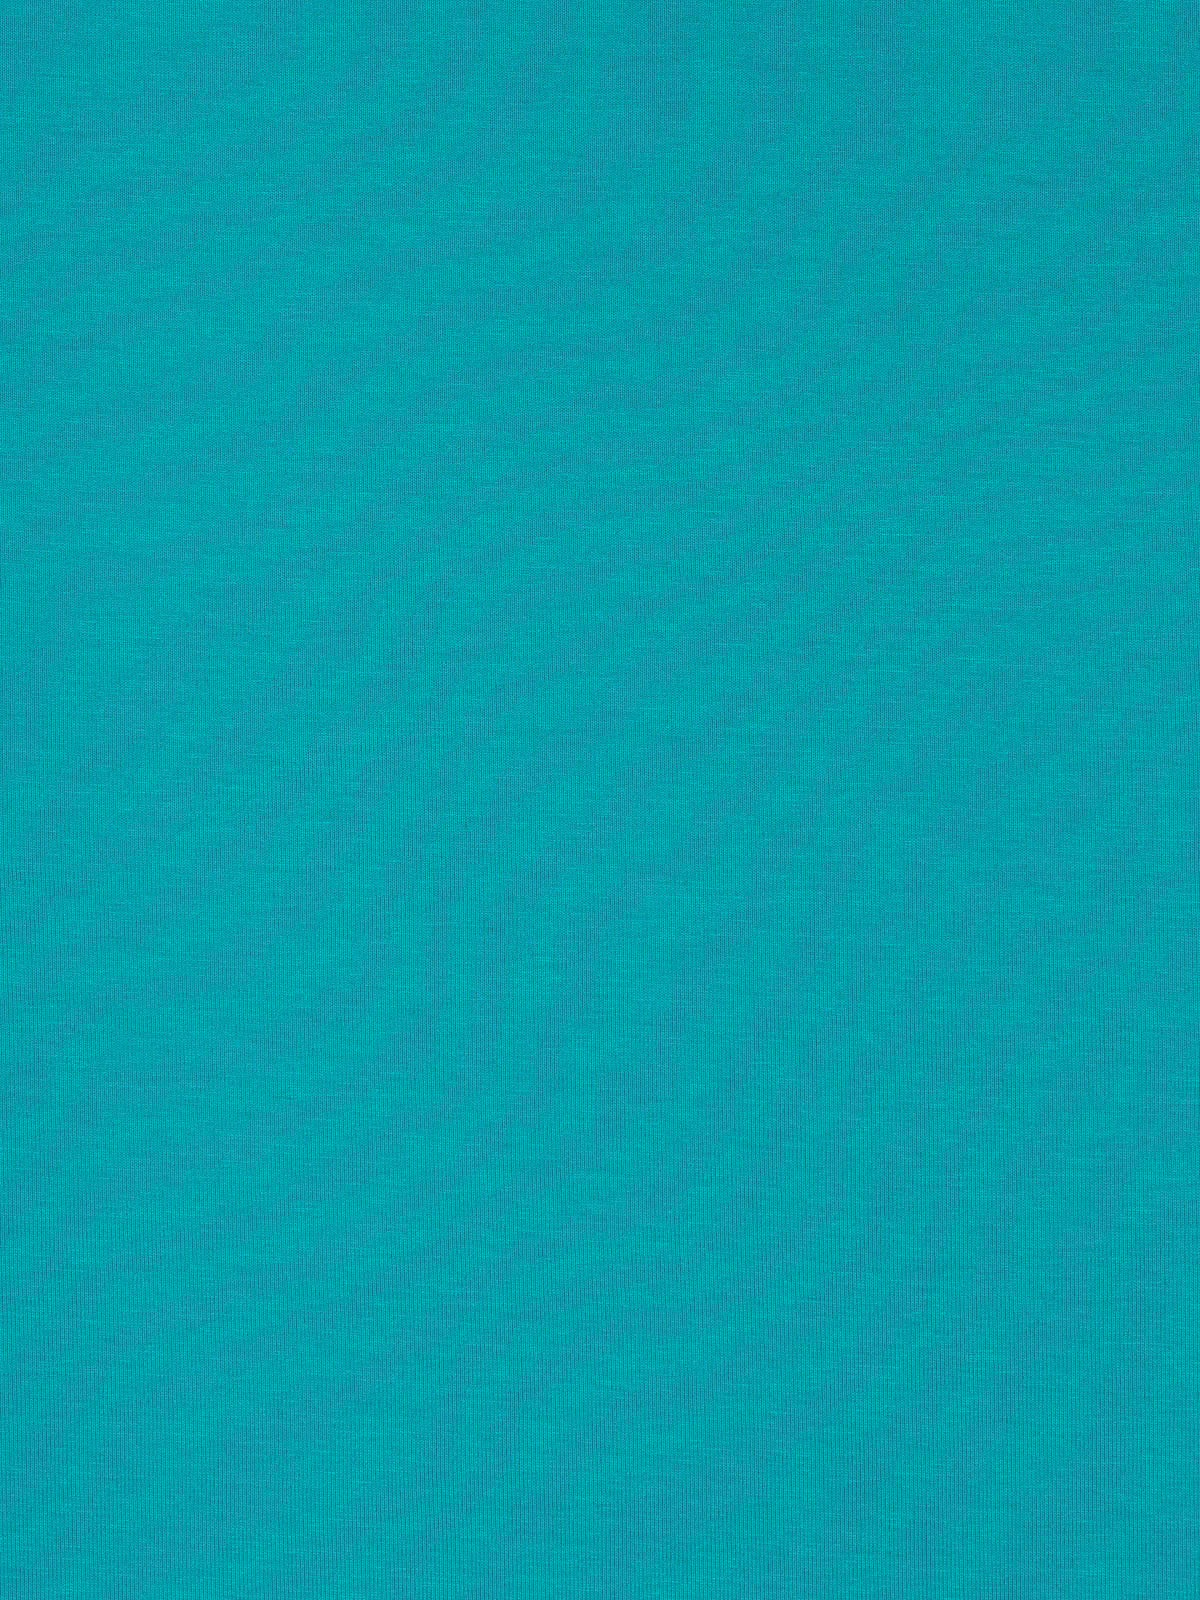 5f9d27feac6 Lightweight fine cotton and viscose jersey fabric. No pattern – turquoise